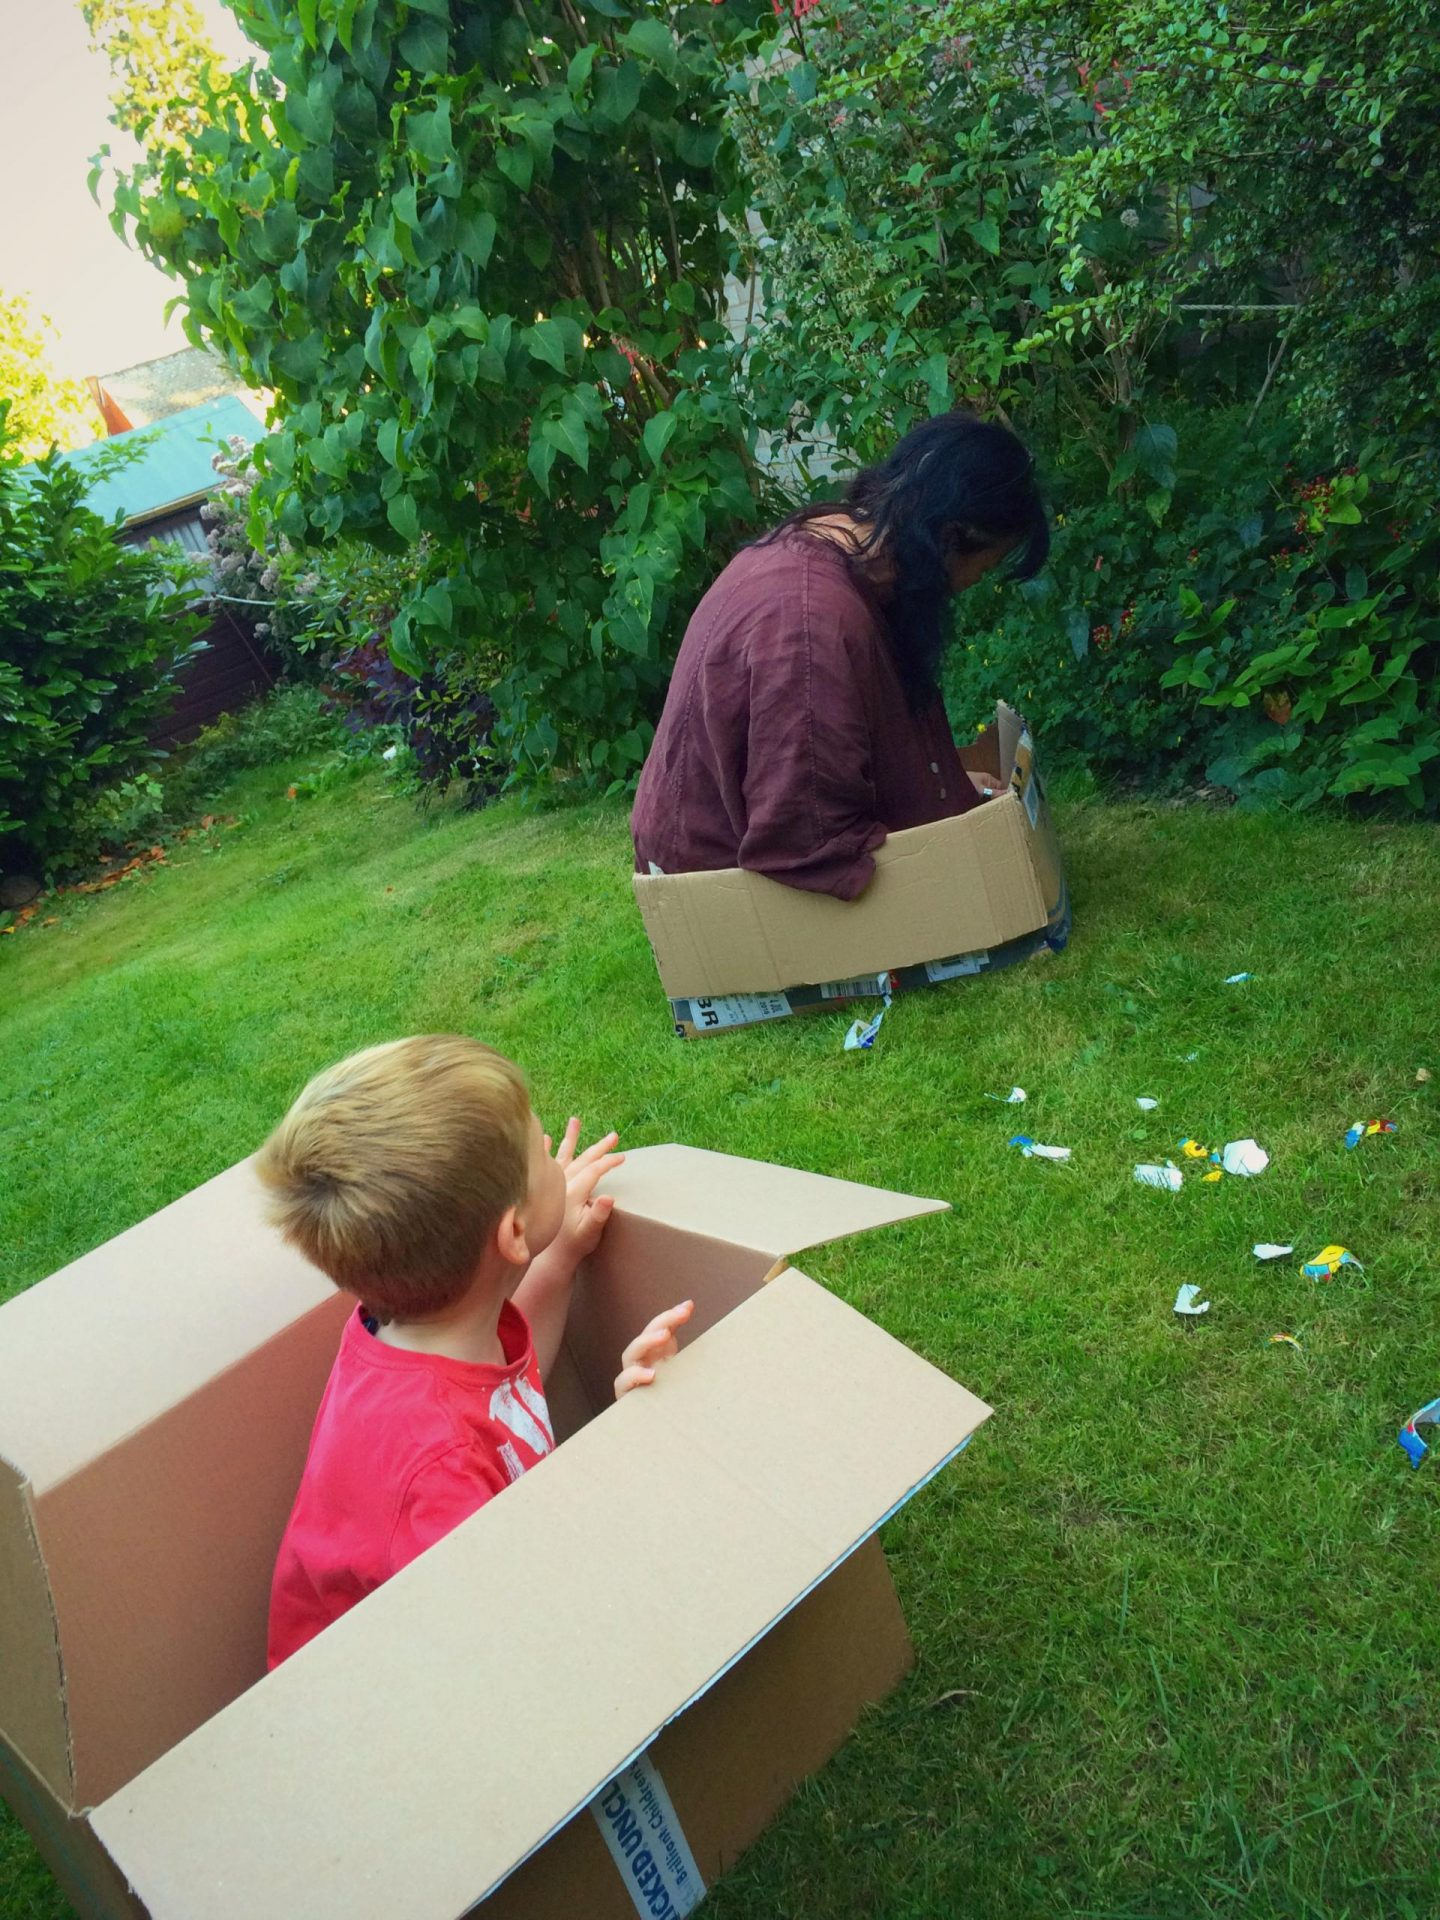 Photo of a child sitting in a cardboard box with his nanny next to him also in a cardboard box.